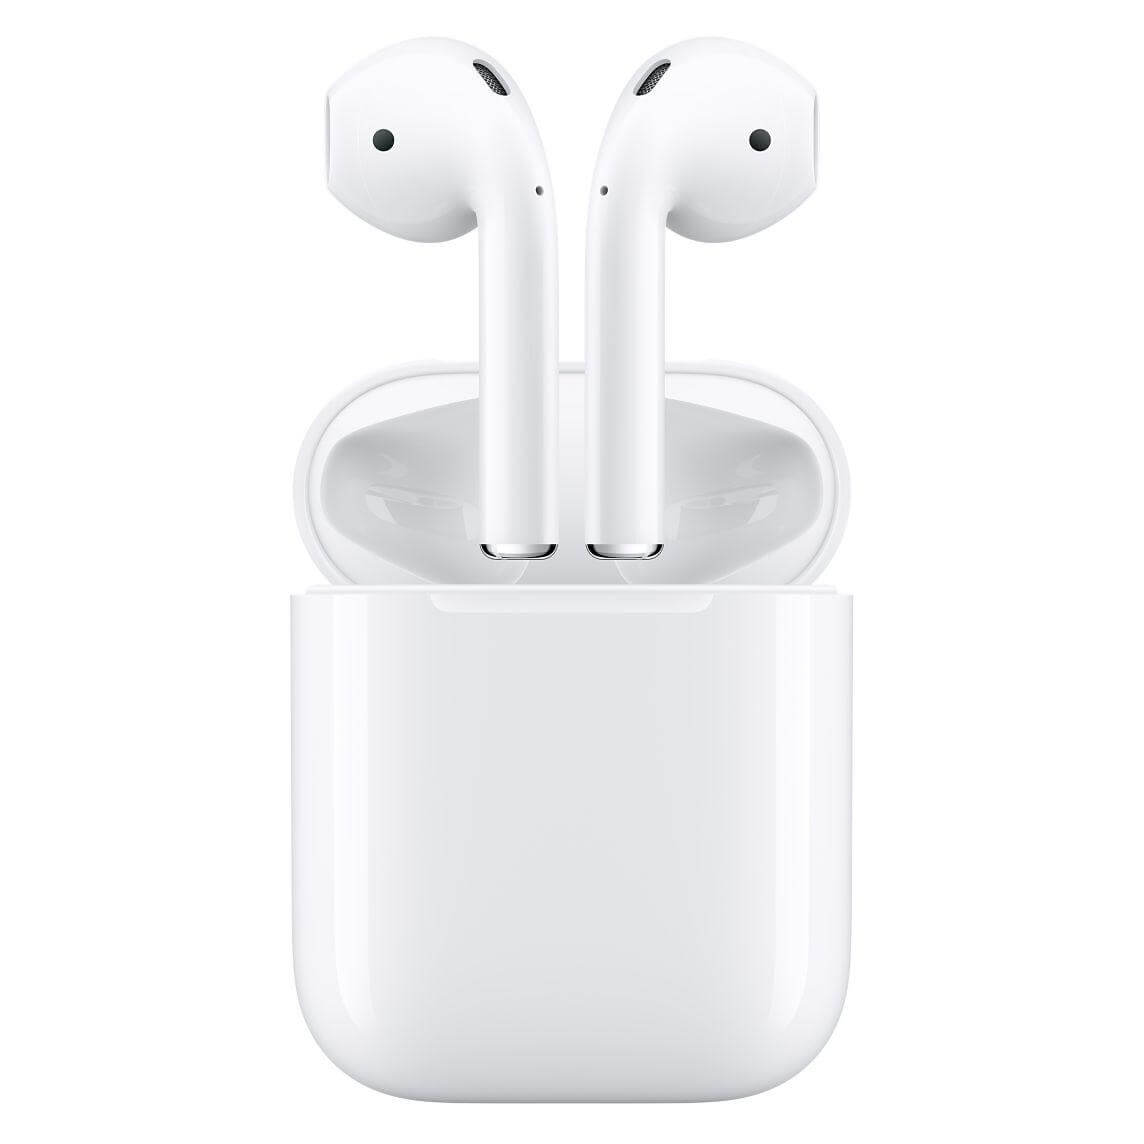 Airpods Price In Nigeria Buy Airpods Online In Nigeria Lagos Abuja